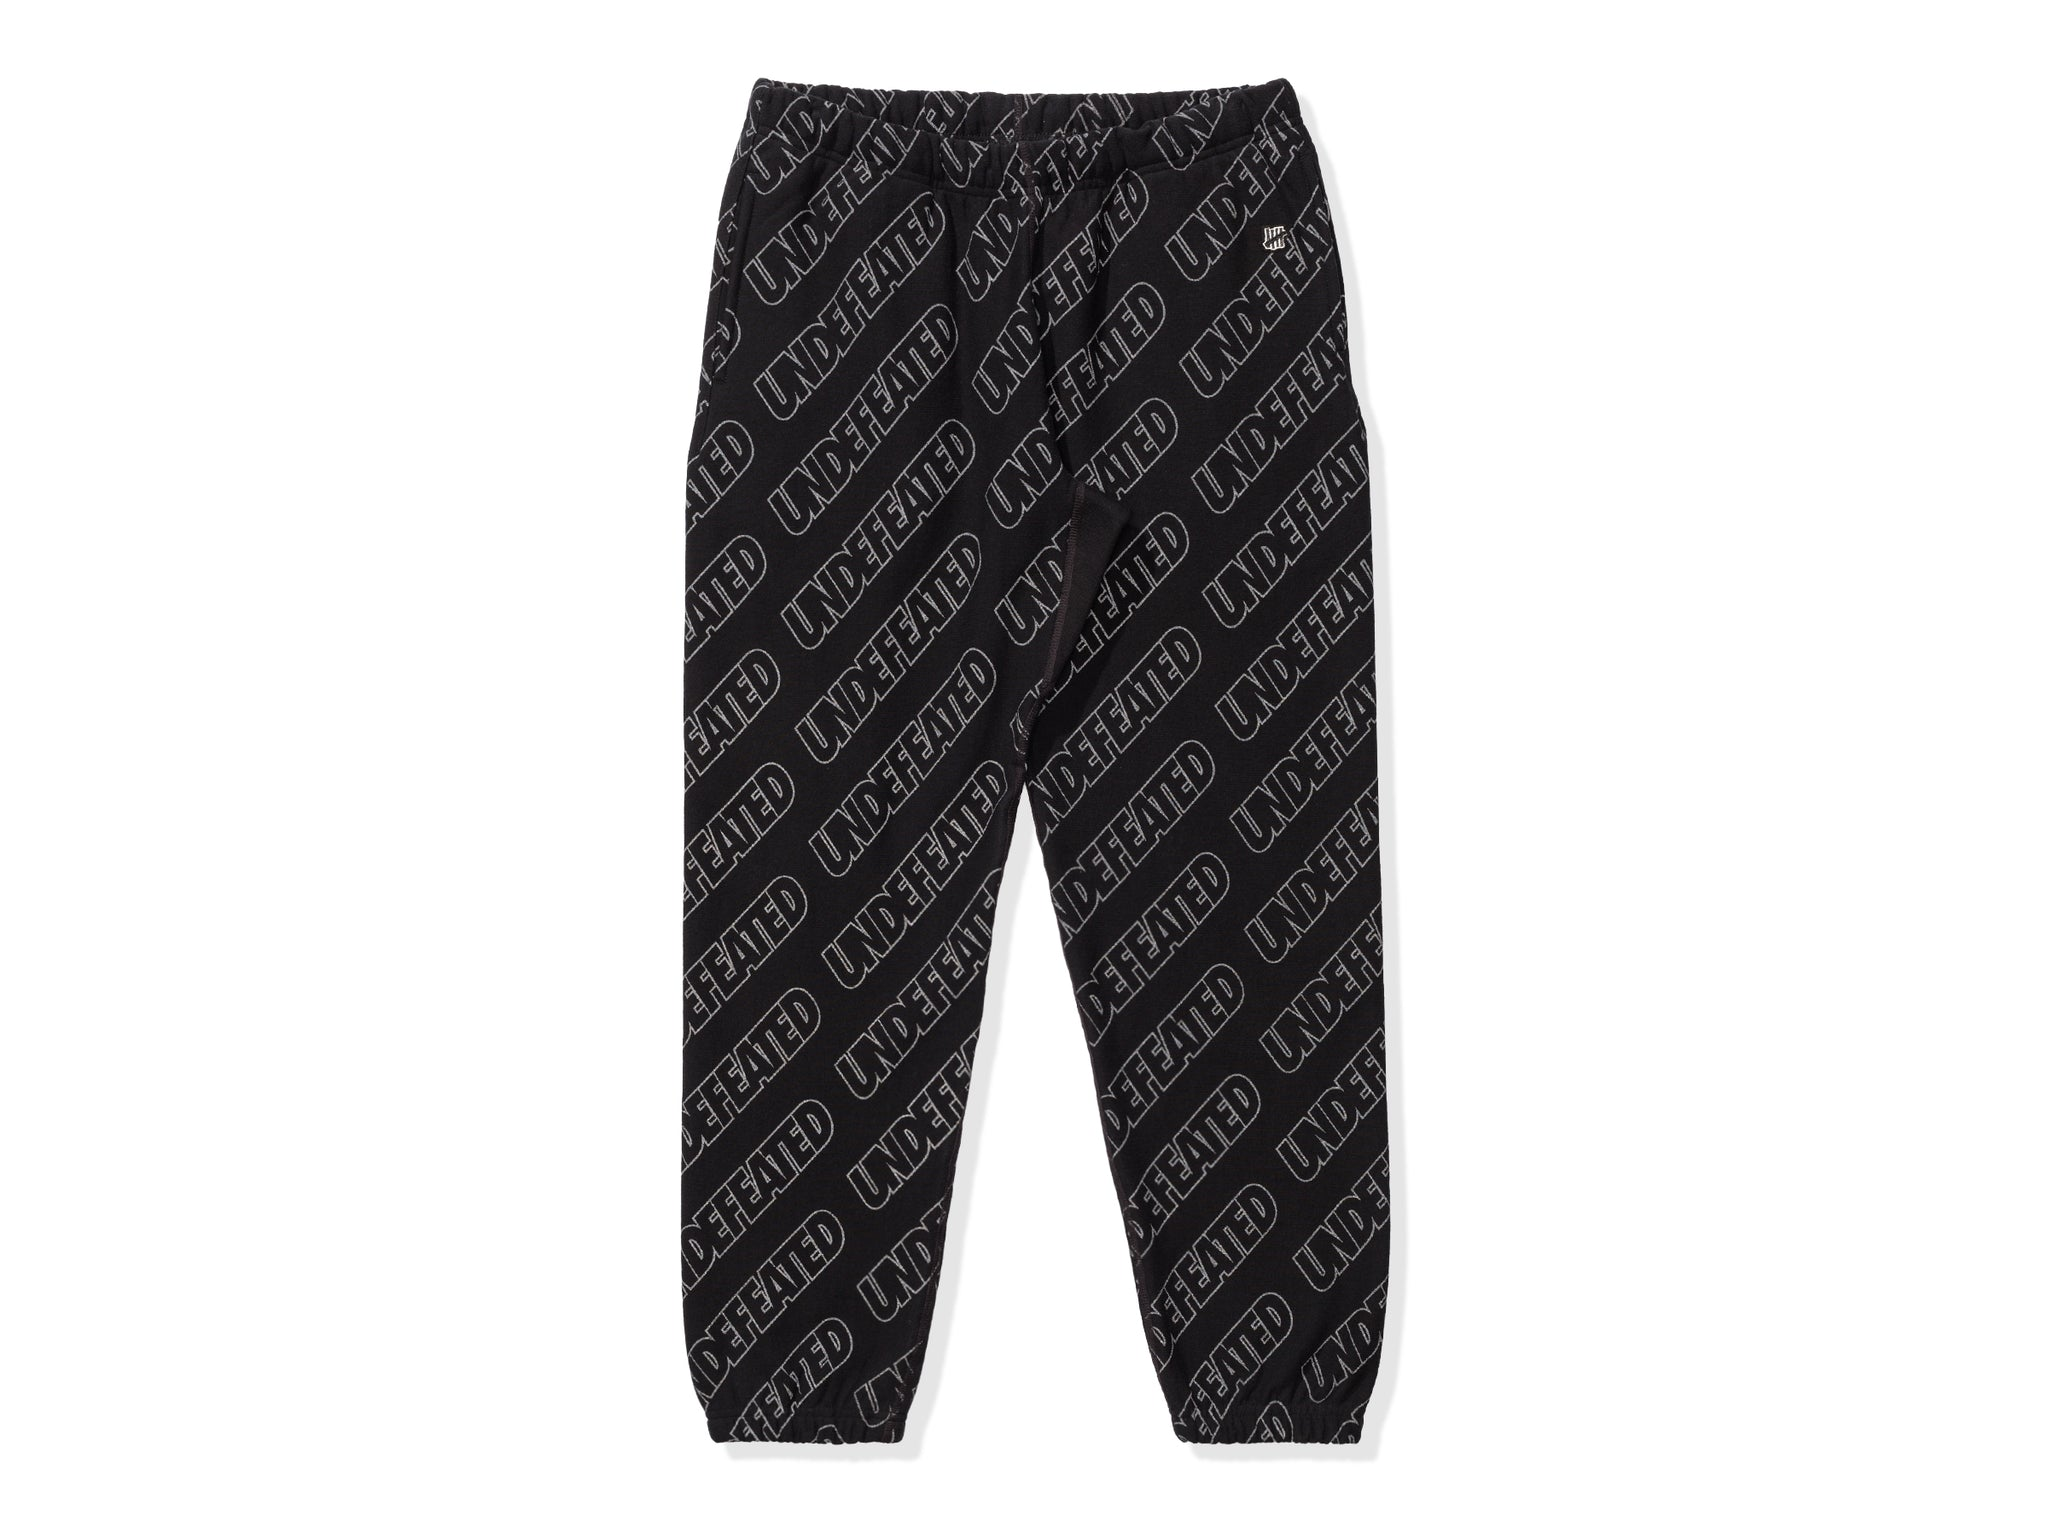 UNDEFEATED REPEAT SWEATPANT